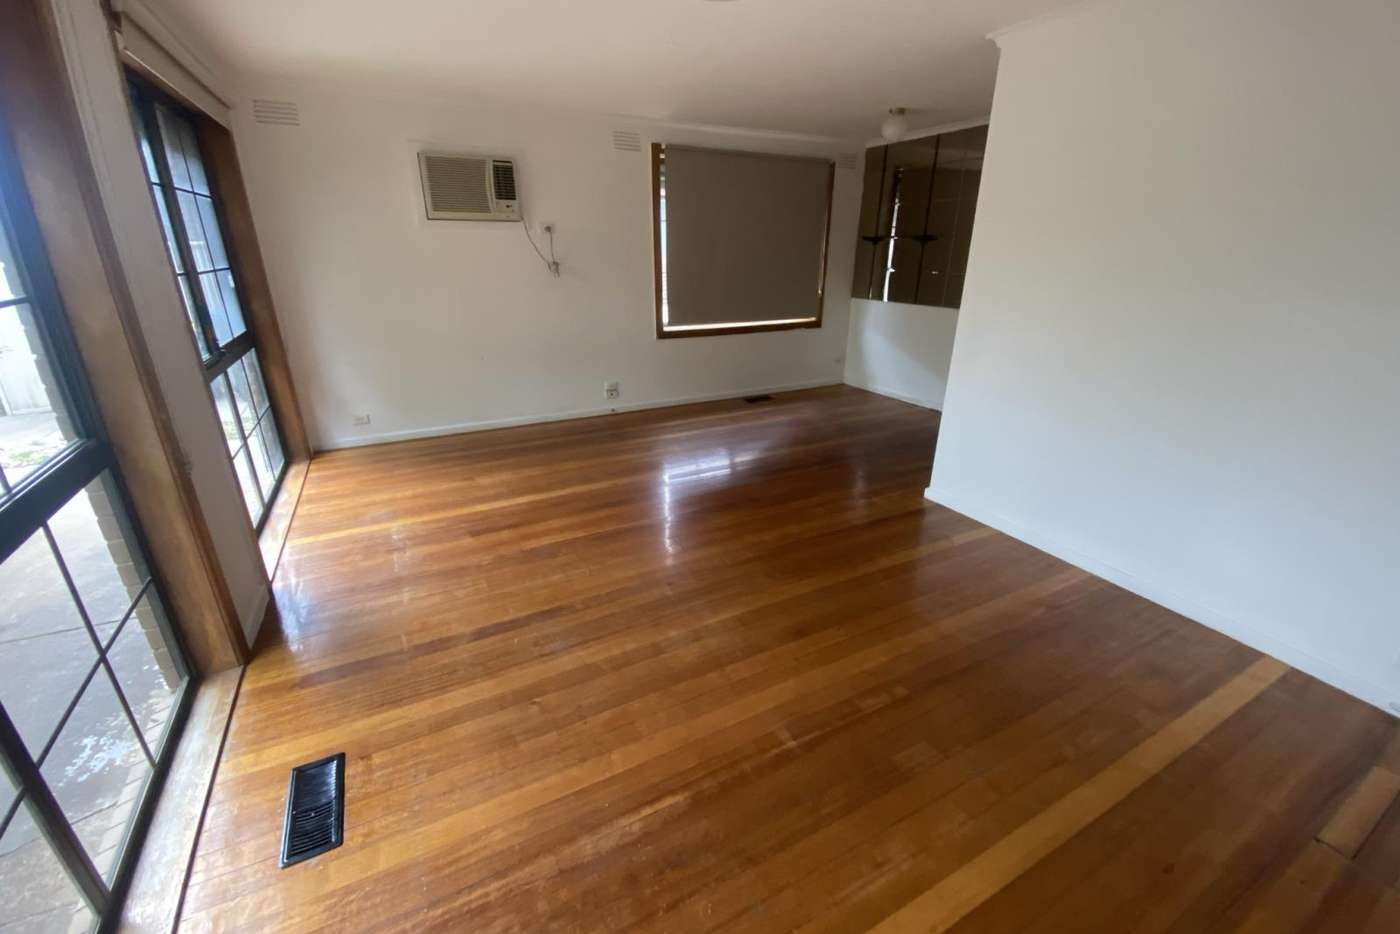 Seventh view of Homely house listing, 96 Derrimut Road, Hoppers Crossing VIC 3029